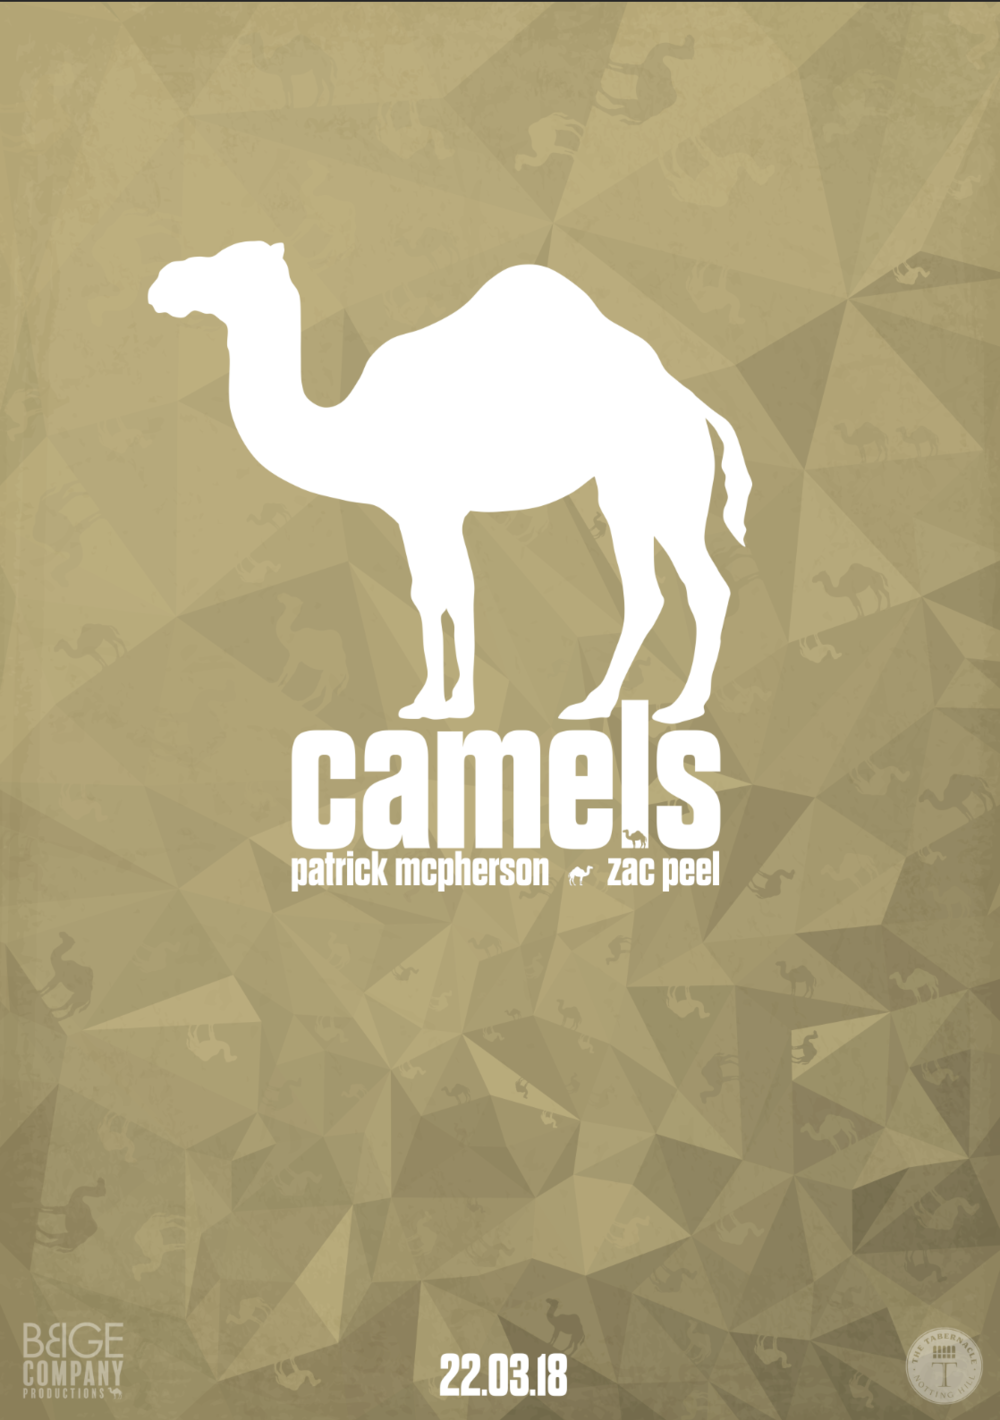 Camels IV - The Tabernacle Theatre (Notting Hill) 22nd March 2018Director: Catrin HarrisAssistant Director: Jonny HarveyGraphics: Jamies CassirProducer: Zac Peel